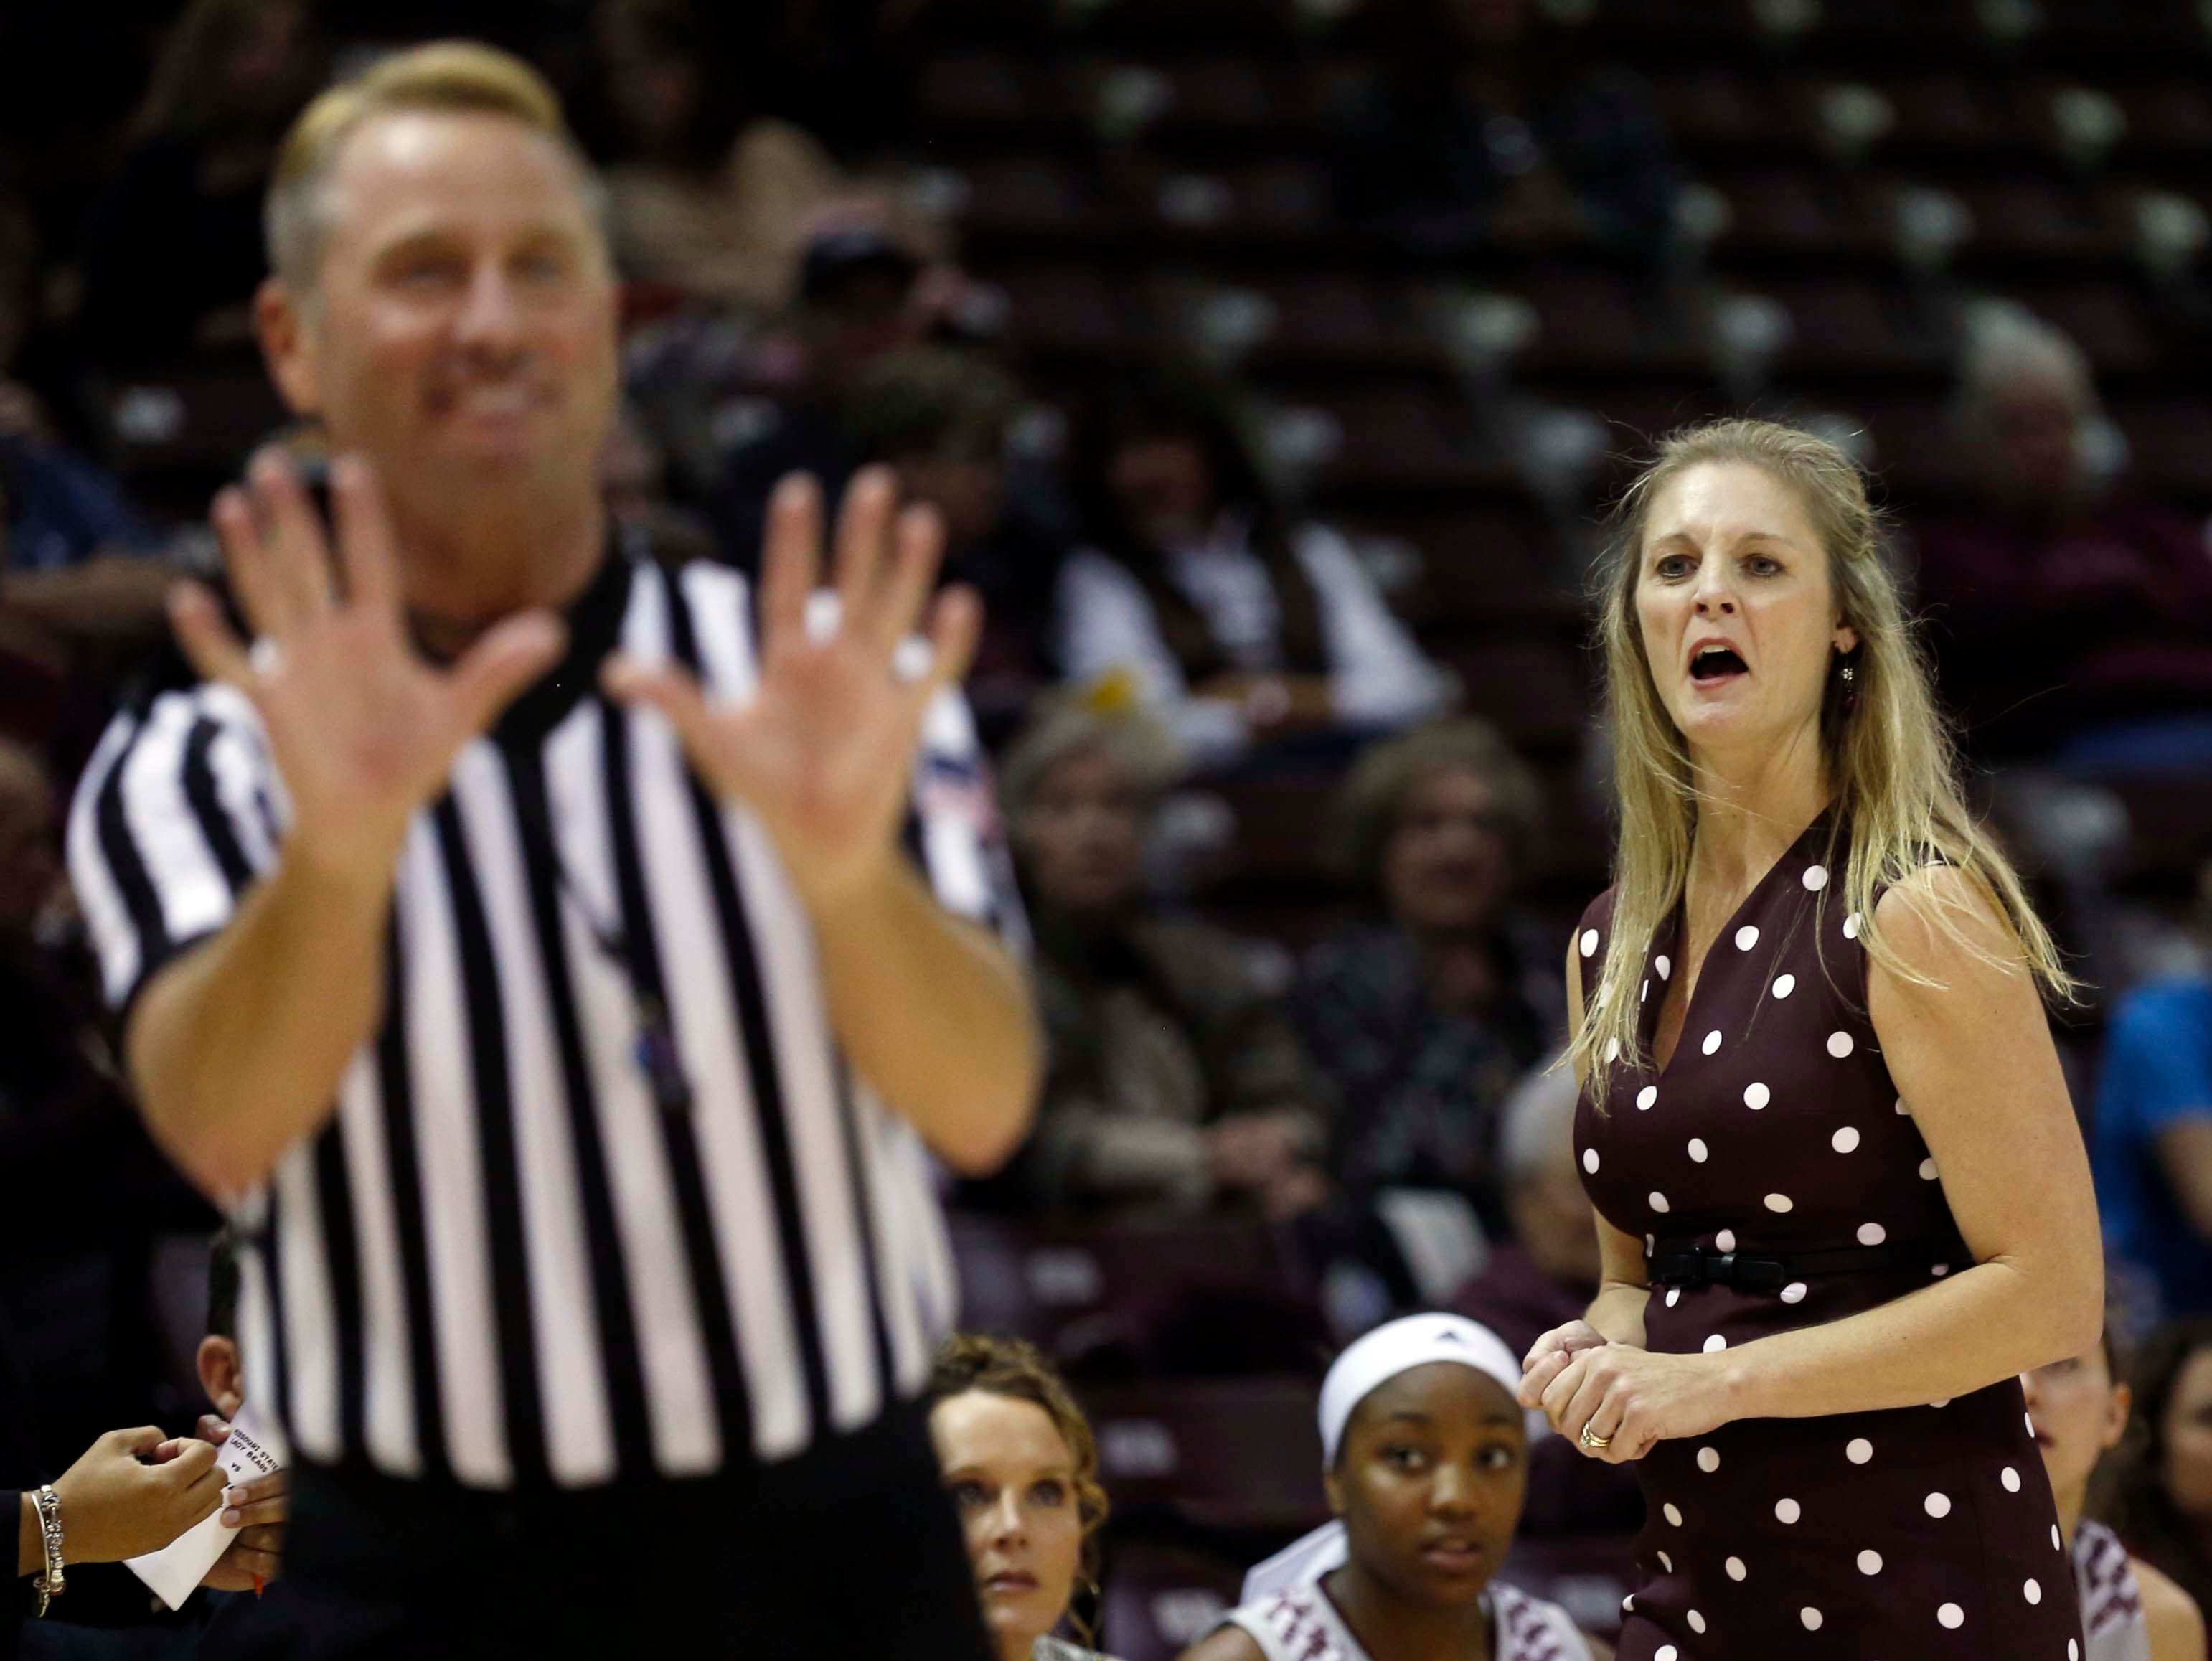 The Missouri State Lady Bears head coach Kelly Harper reacts to a referee's call against Ball State University at JQH Arena in Springfield on November 17, 2018.